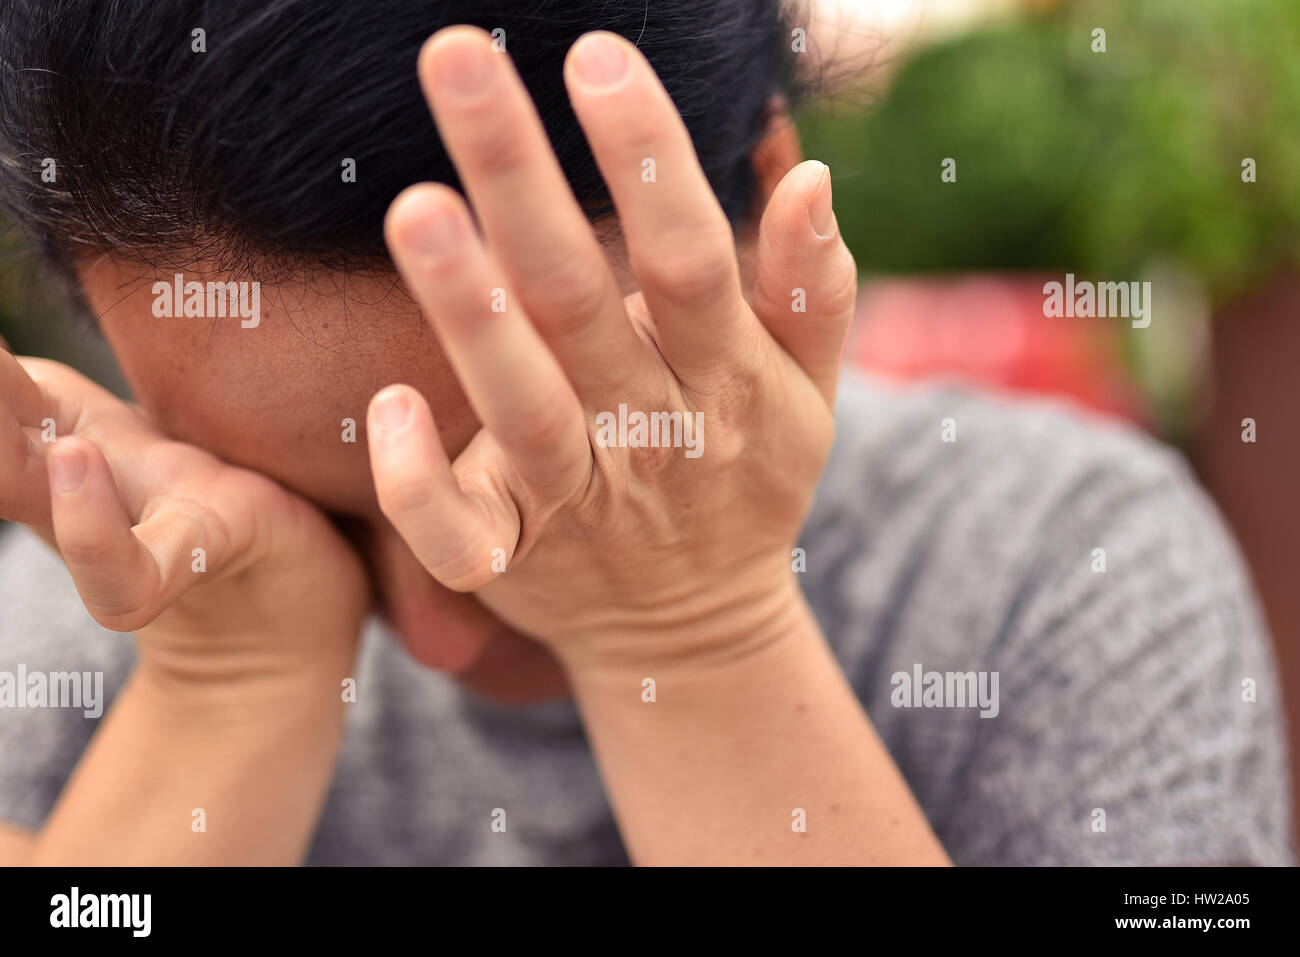 young-attractive-woman-hiding-her-face-i